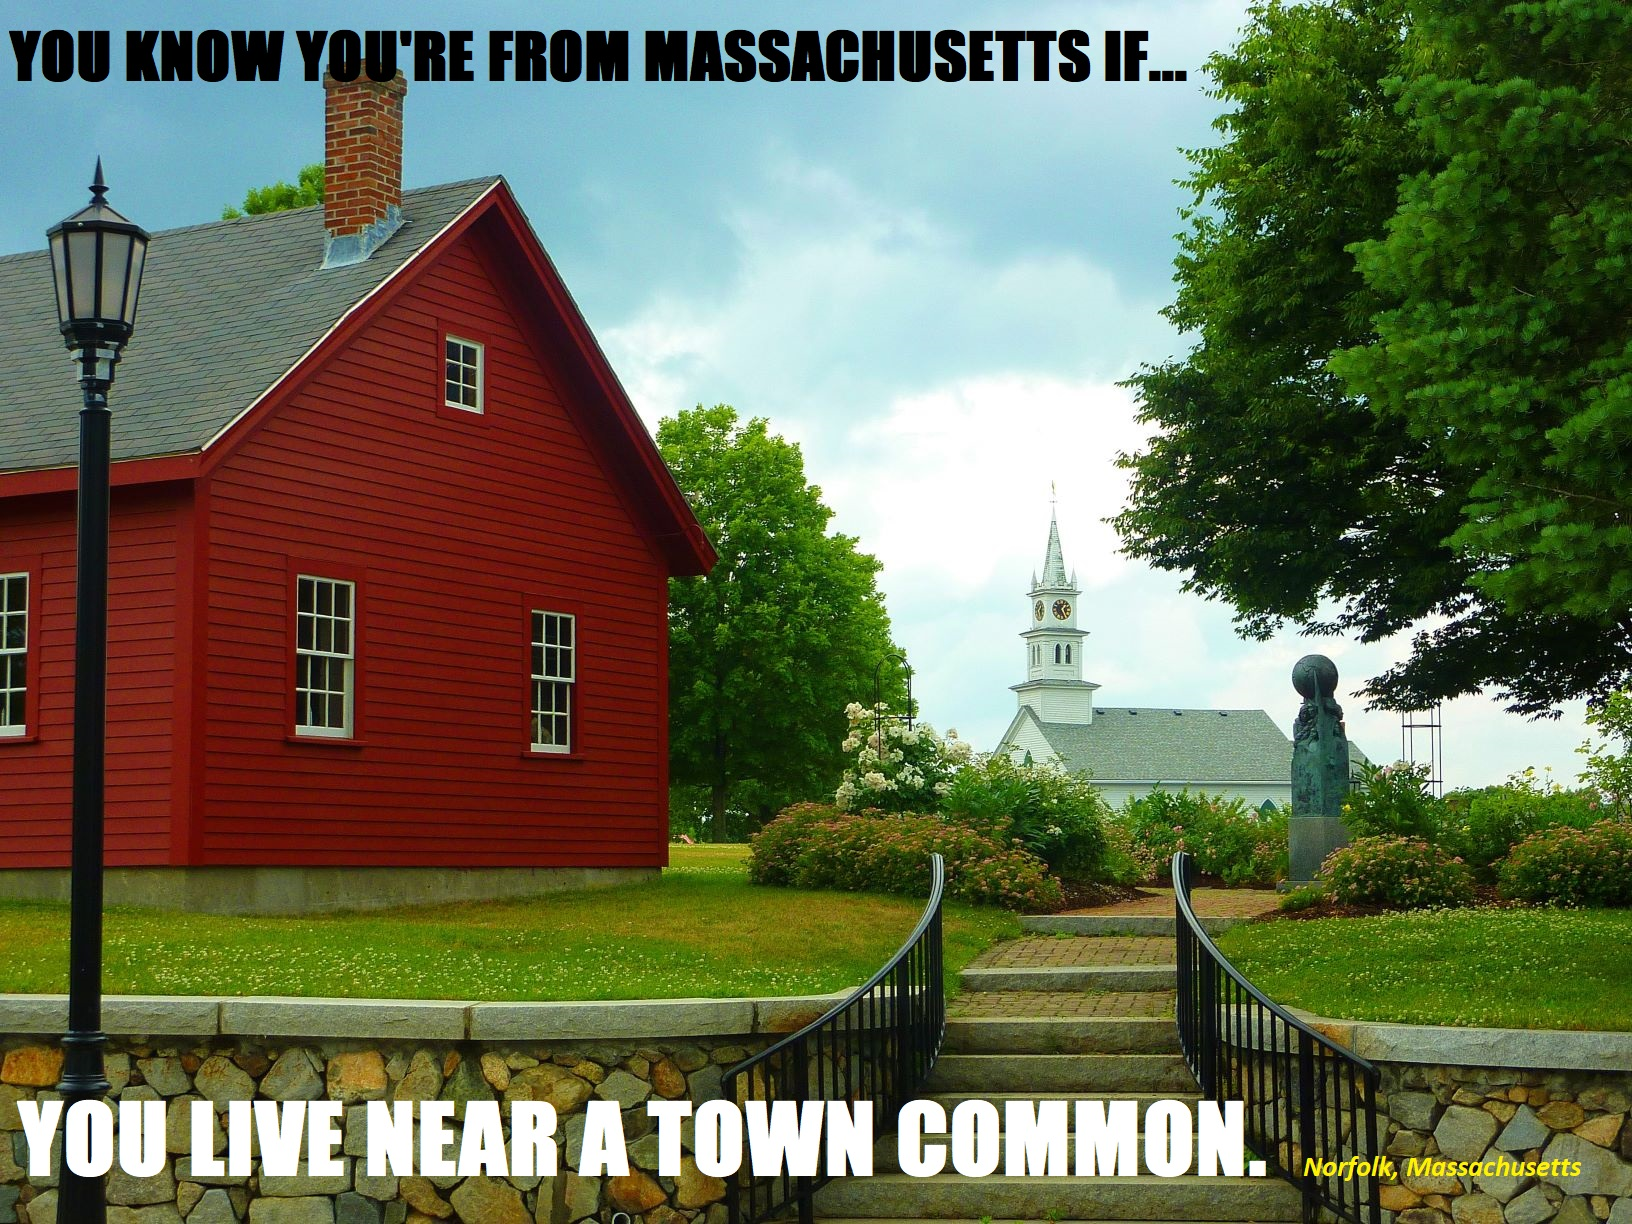 You know you're from Massachusetts if...